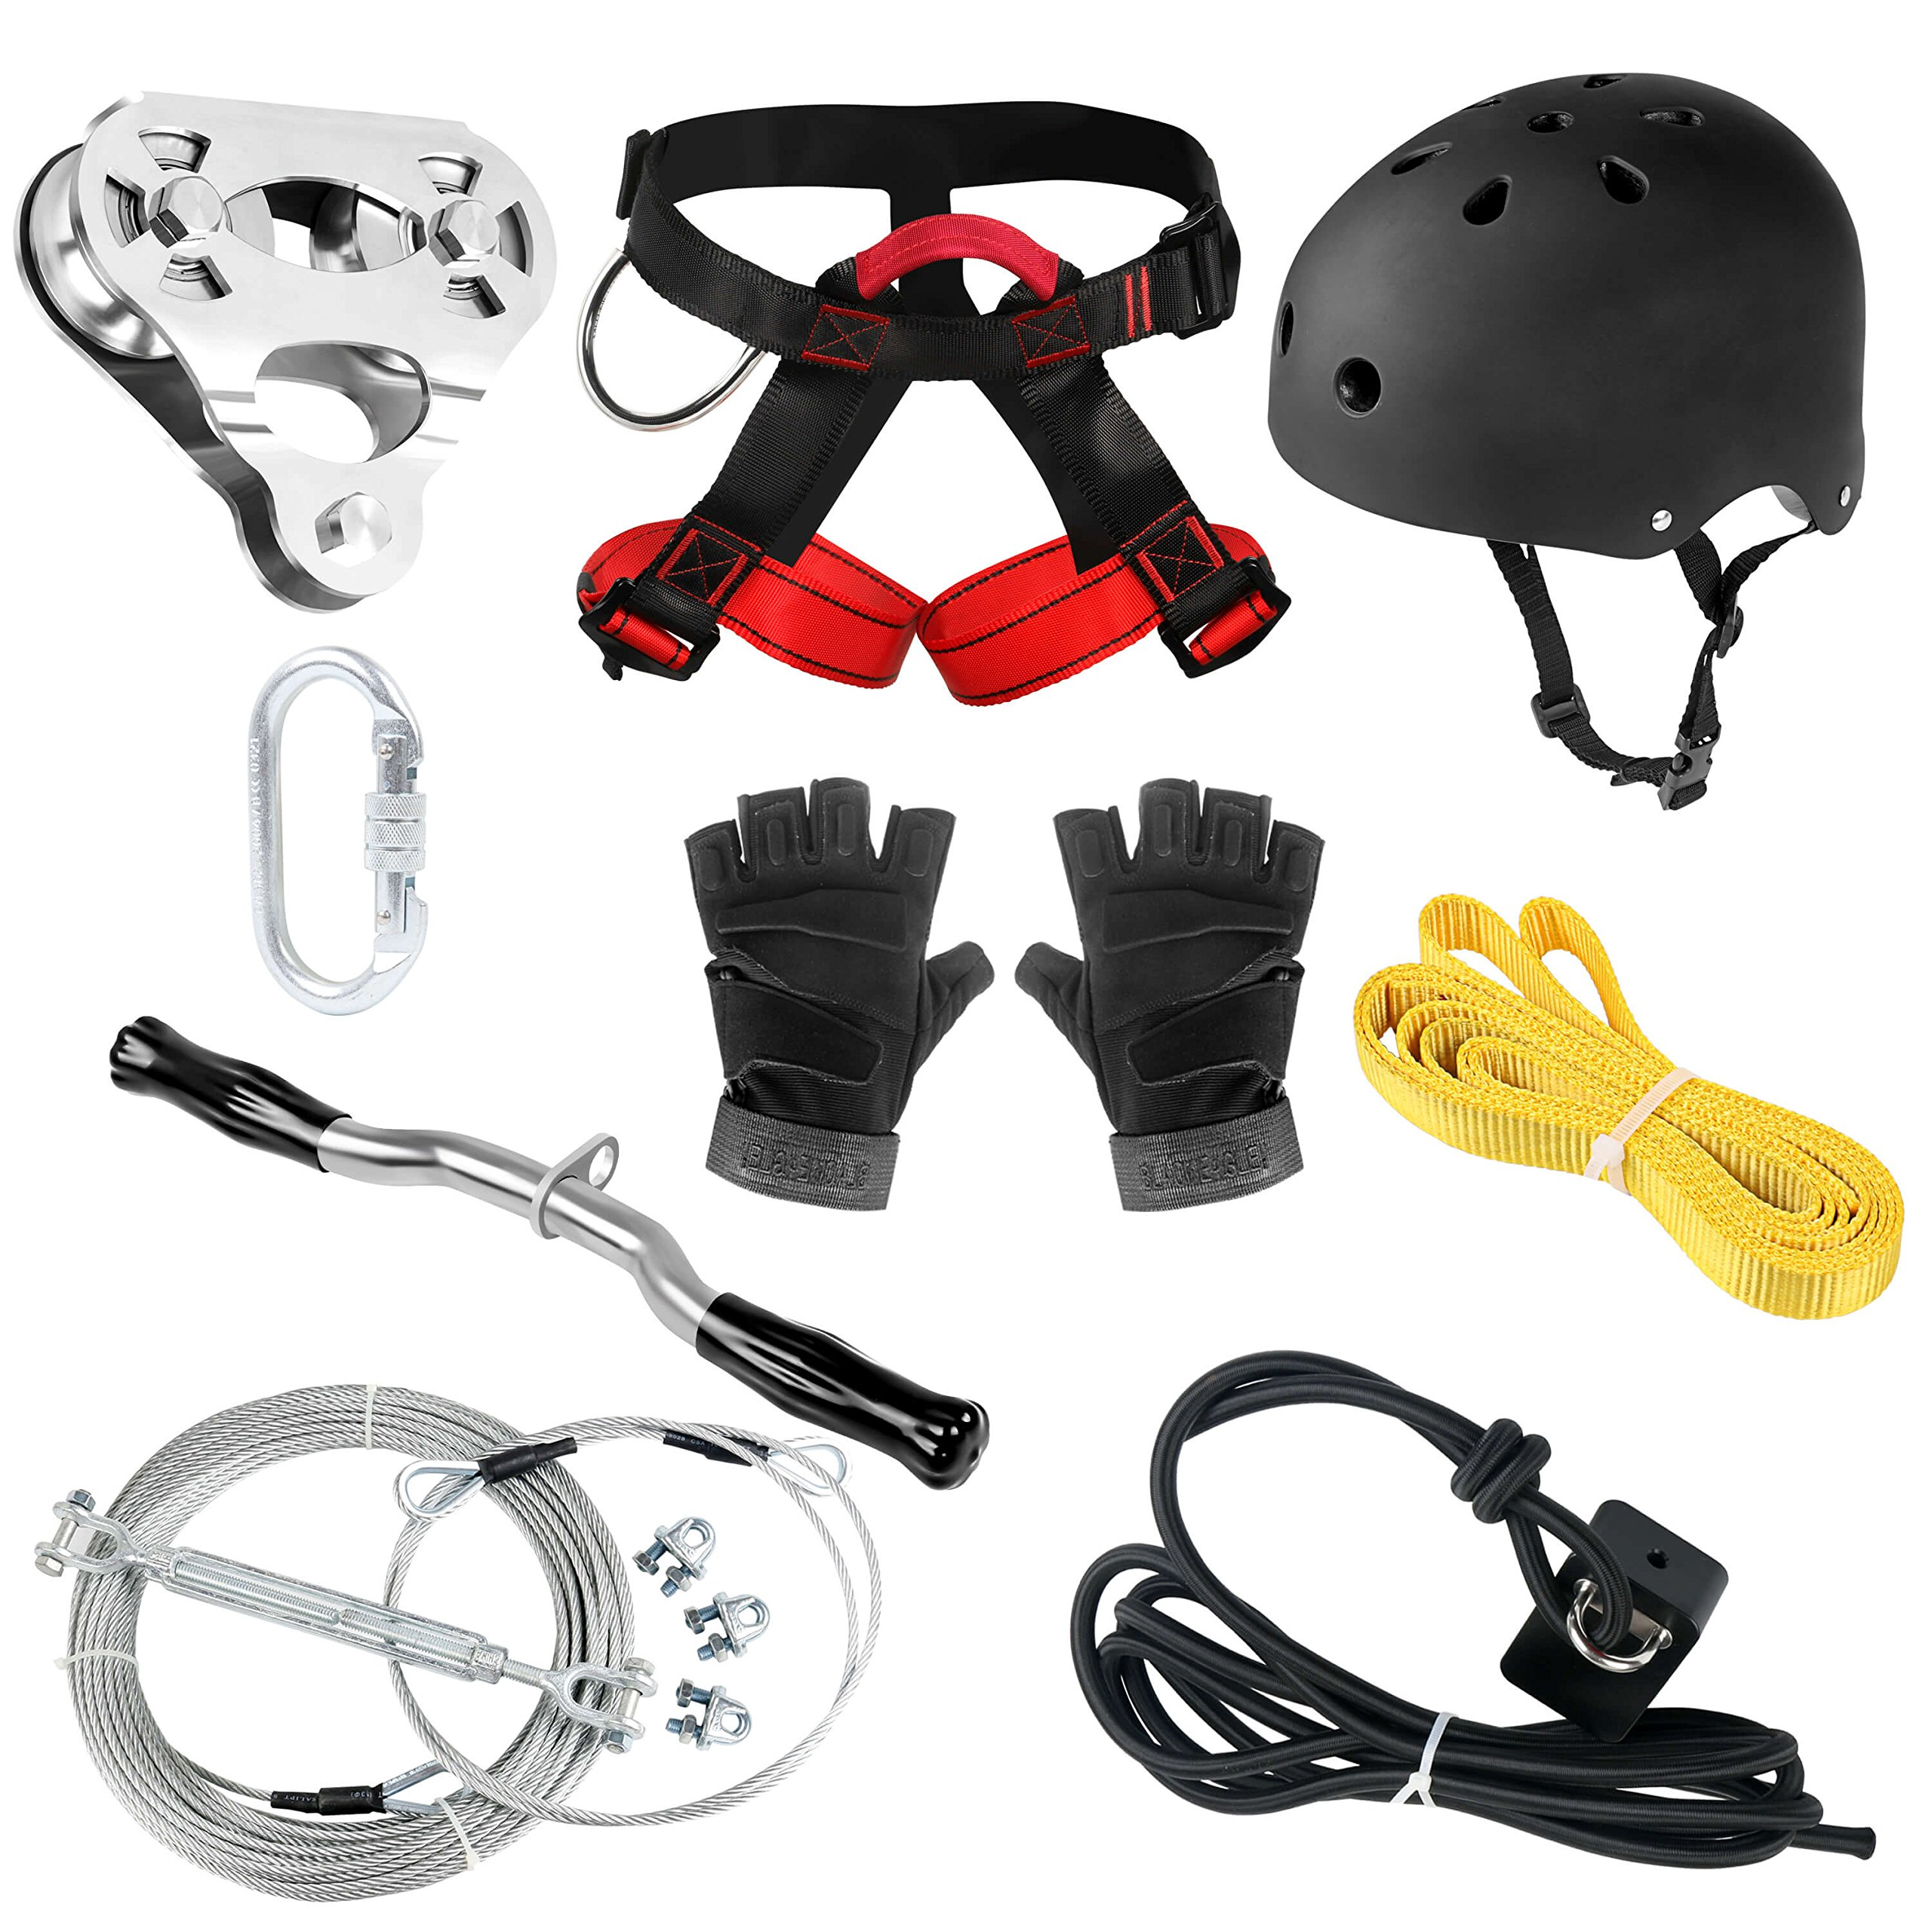 CTSC 150 Foot Zip Line Kit for Kids and Adult(Less Then 250lb) with Brake and Seat, Helmet and Harness, Zipline for Backyard Entertainment Equipment, Premium Materials, Easy to Install (150)